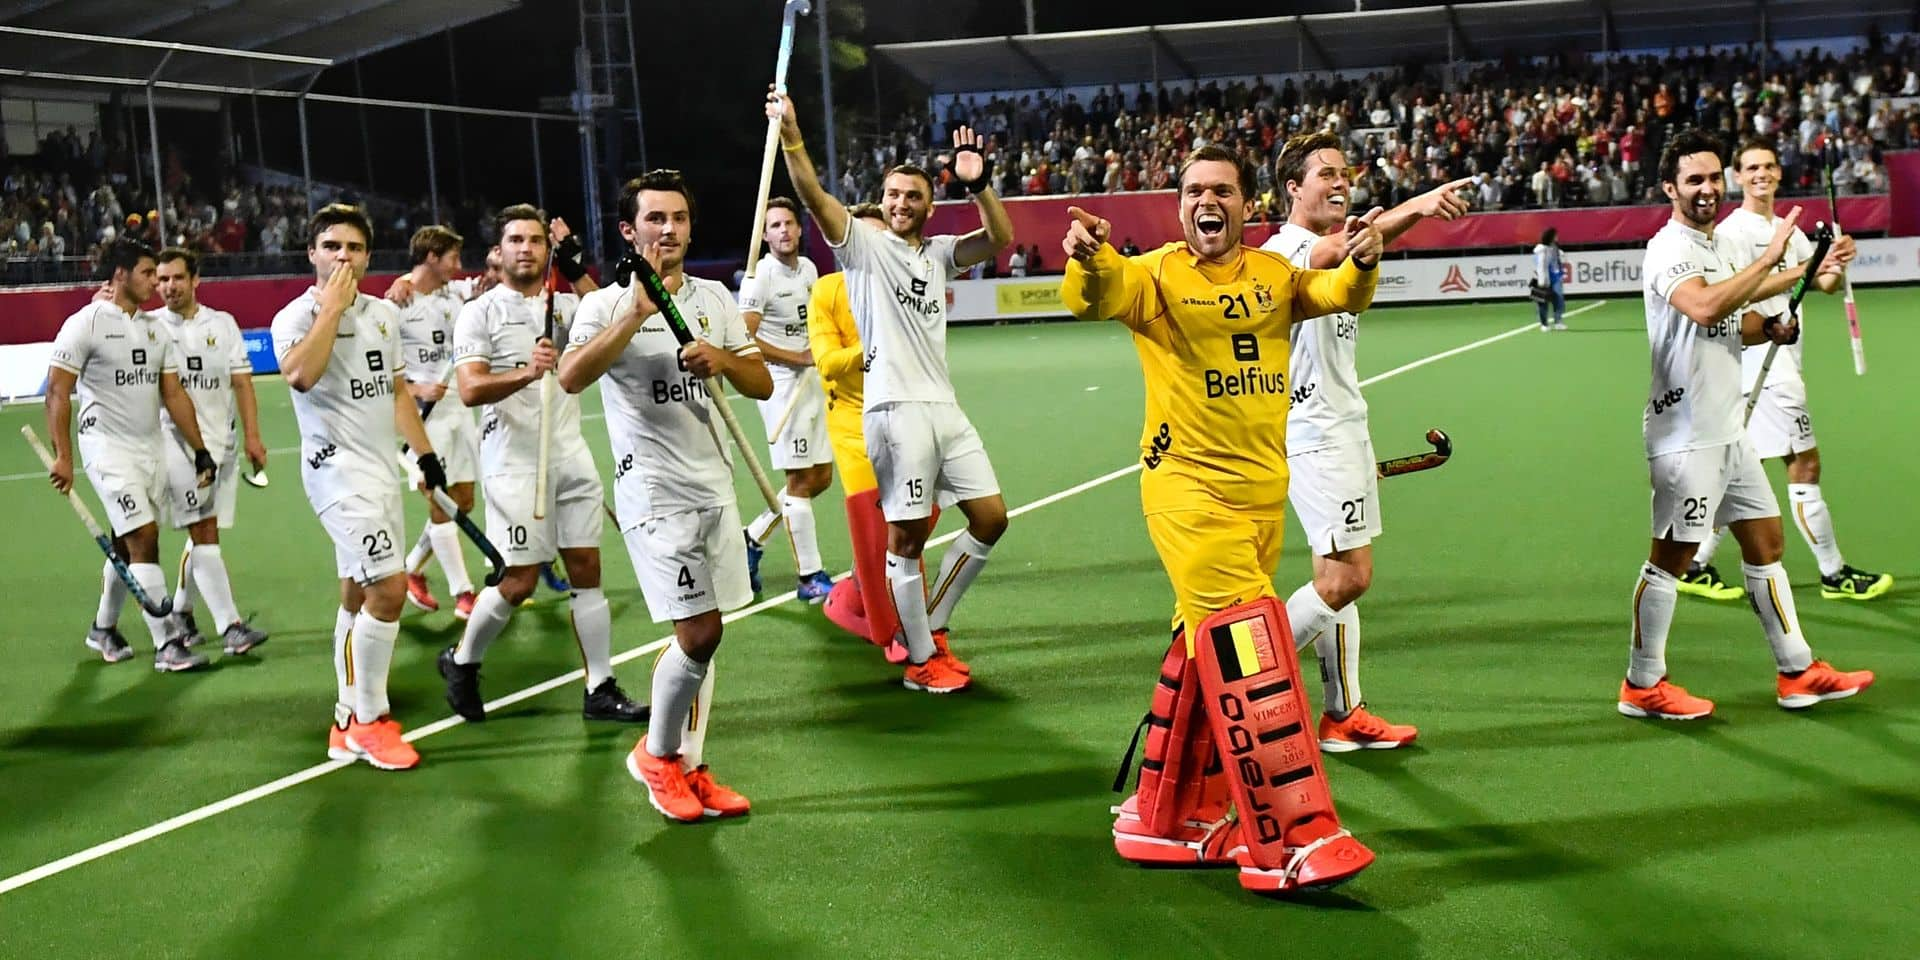 Belgium's goalkeeper Vincent Vanasch celebrates after winning a hockey game between Belgian national team The Red Lions and Germany, a semi finals game at the 'EuroHockey' European Championships, Thursday 22 August 2019 in Wilrijk, Antwerp. BELGA PHOTO DIRK WAEM